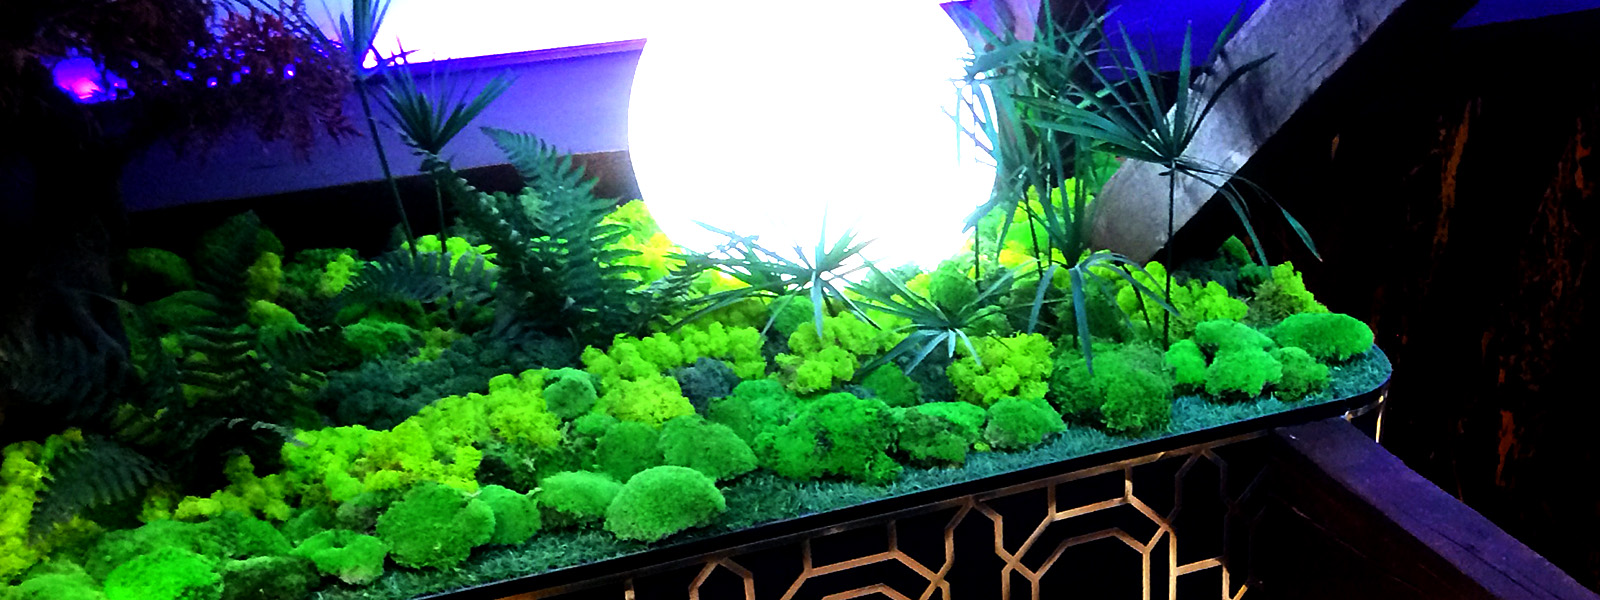 preserved moss display styling details. Interior design and styling details by Moji Salehi at Moji Interiors in Hove.